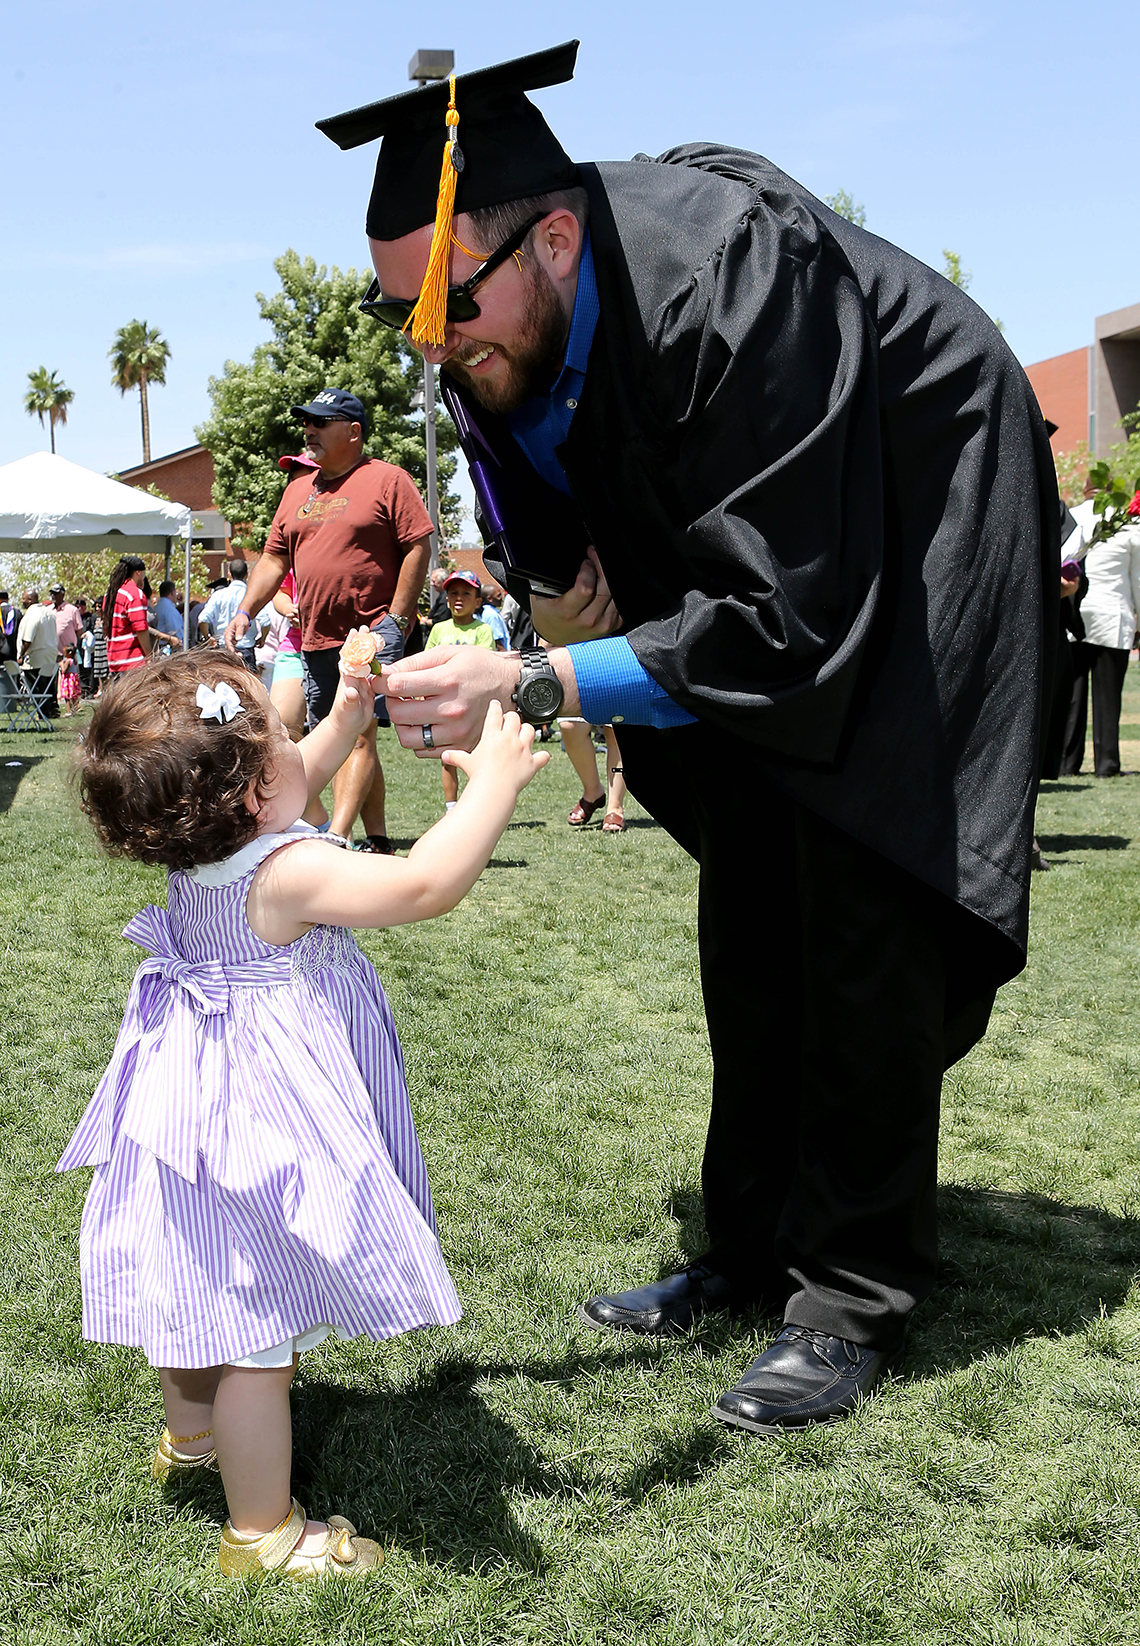 Recently graduated male students hands a flower to a little girl outside.